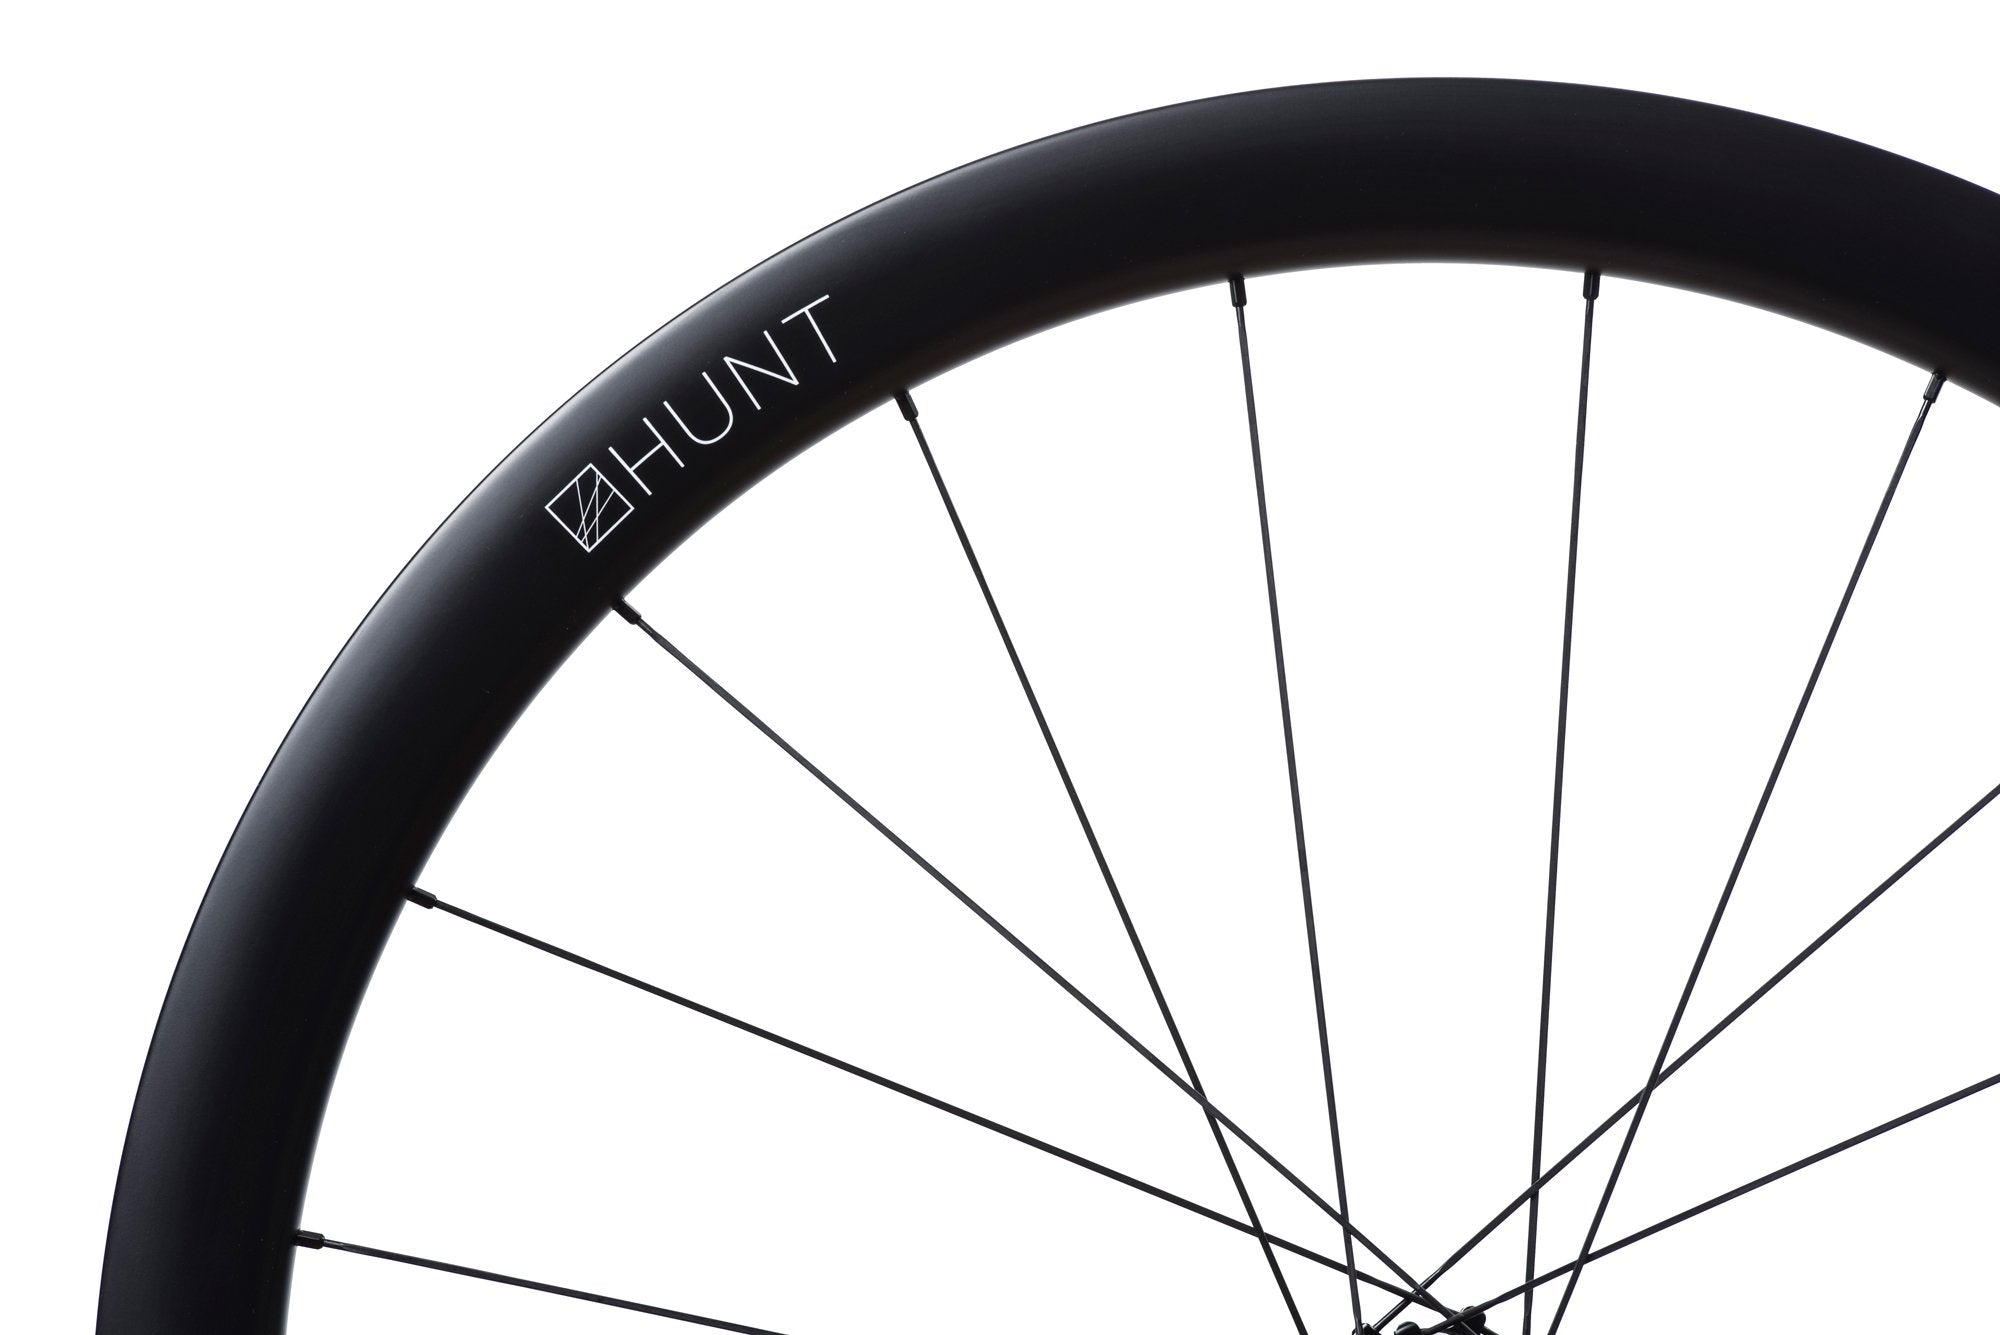 <h1>Tyre Width Optimisation</h1><i> Designed around a 20mm internal rim width optimised for a 25c tyre (but will of course work without compromise with both 23c and 28c tyres). Naturally, as with all of our rims, they feature a hooked tyre retention design for safety, and are both fully ETRTO-compatible and tubeless-ready.</i>